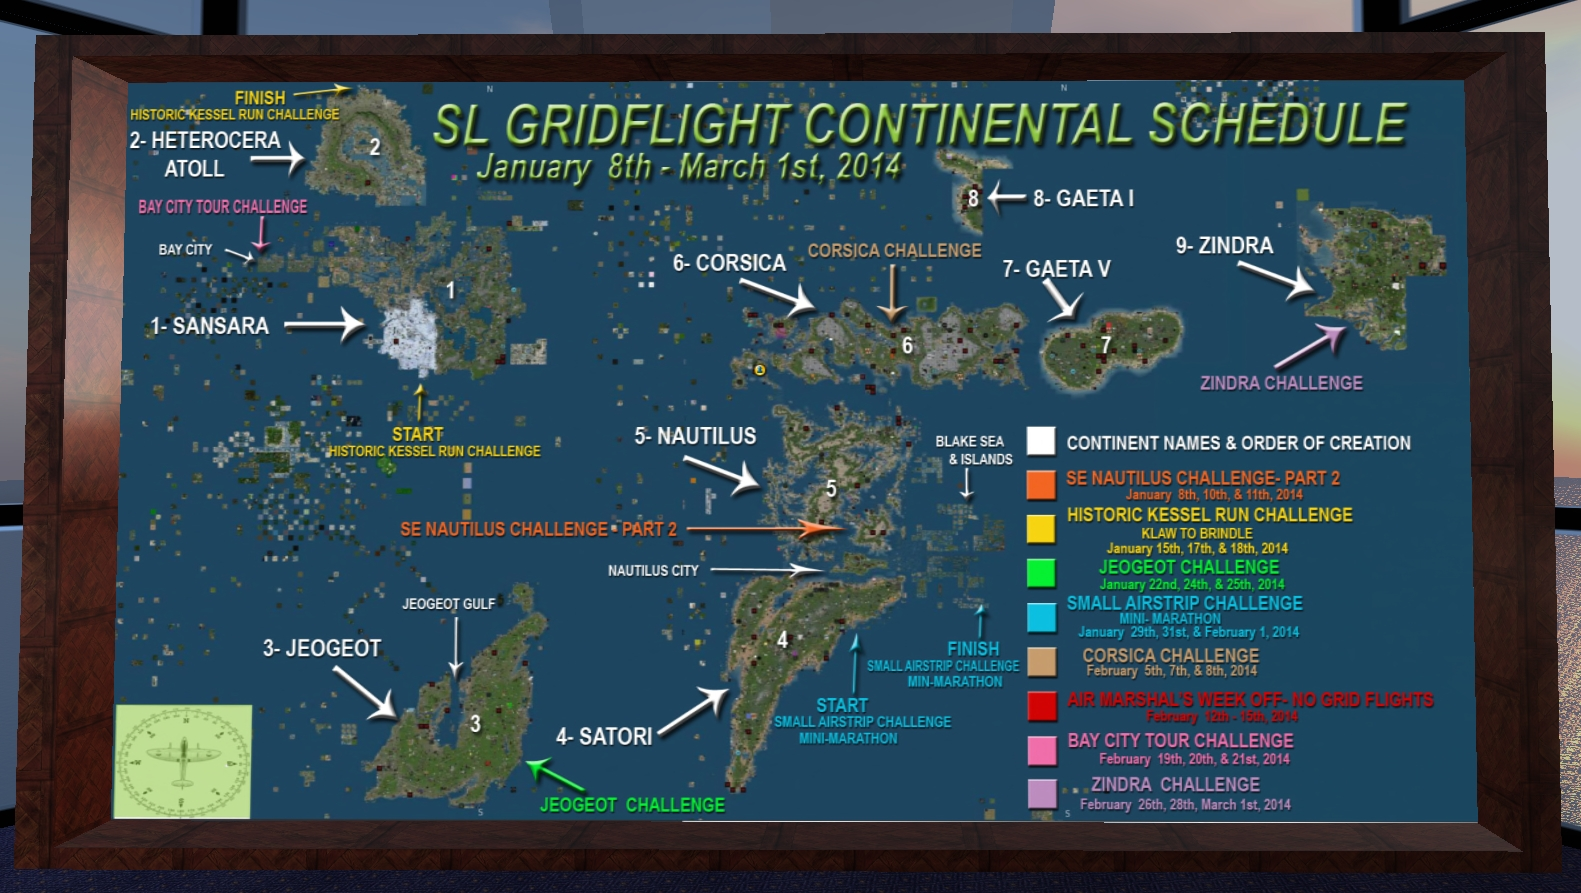 SL Gridflight Continental Schedule.jpg